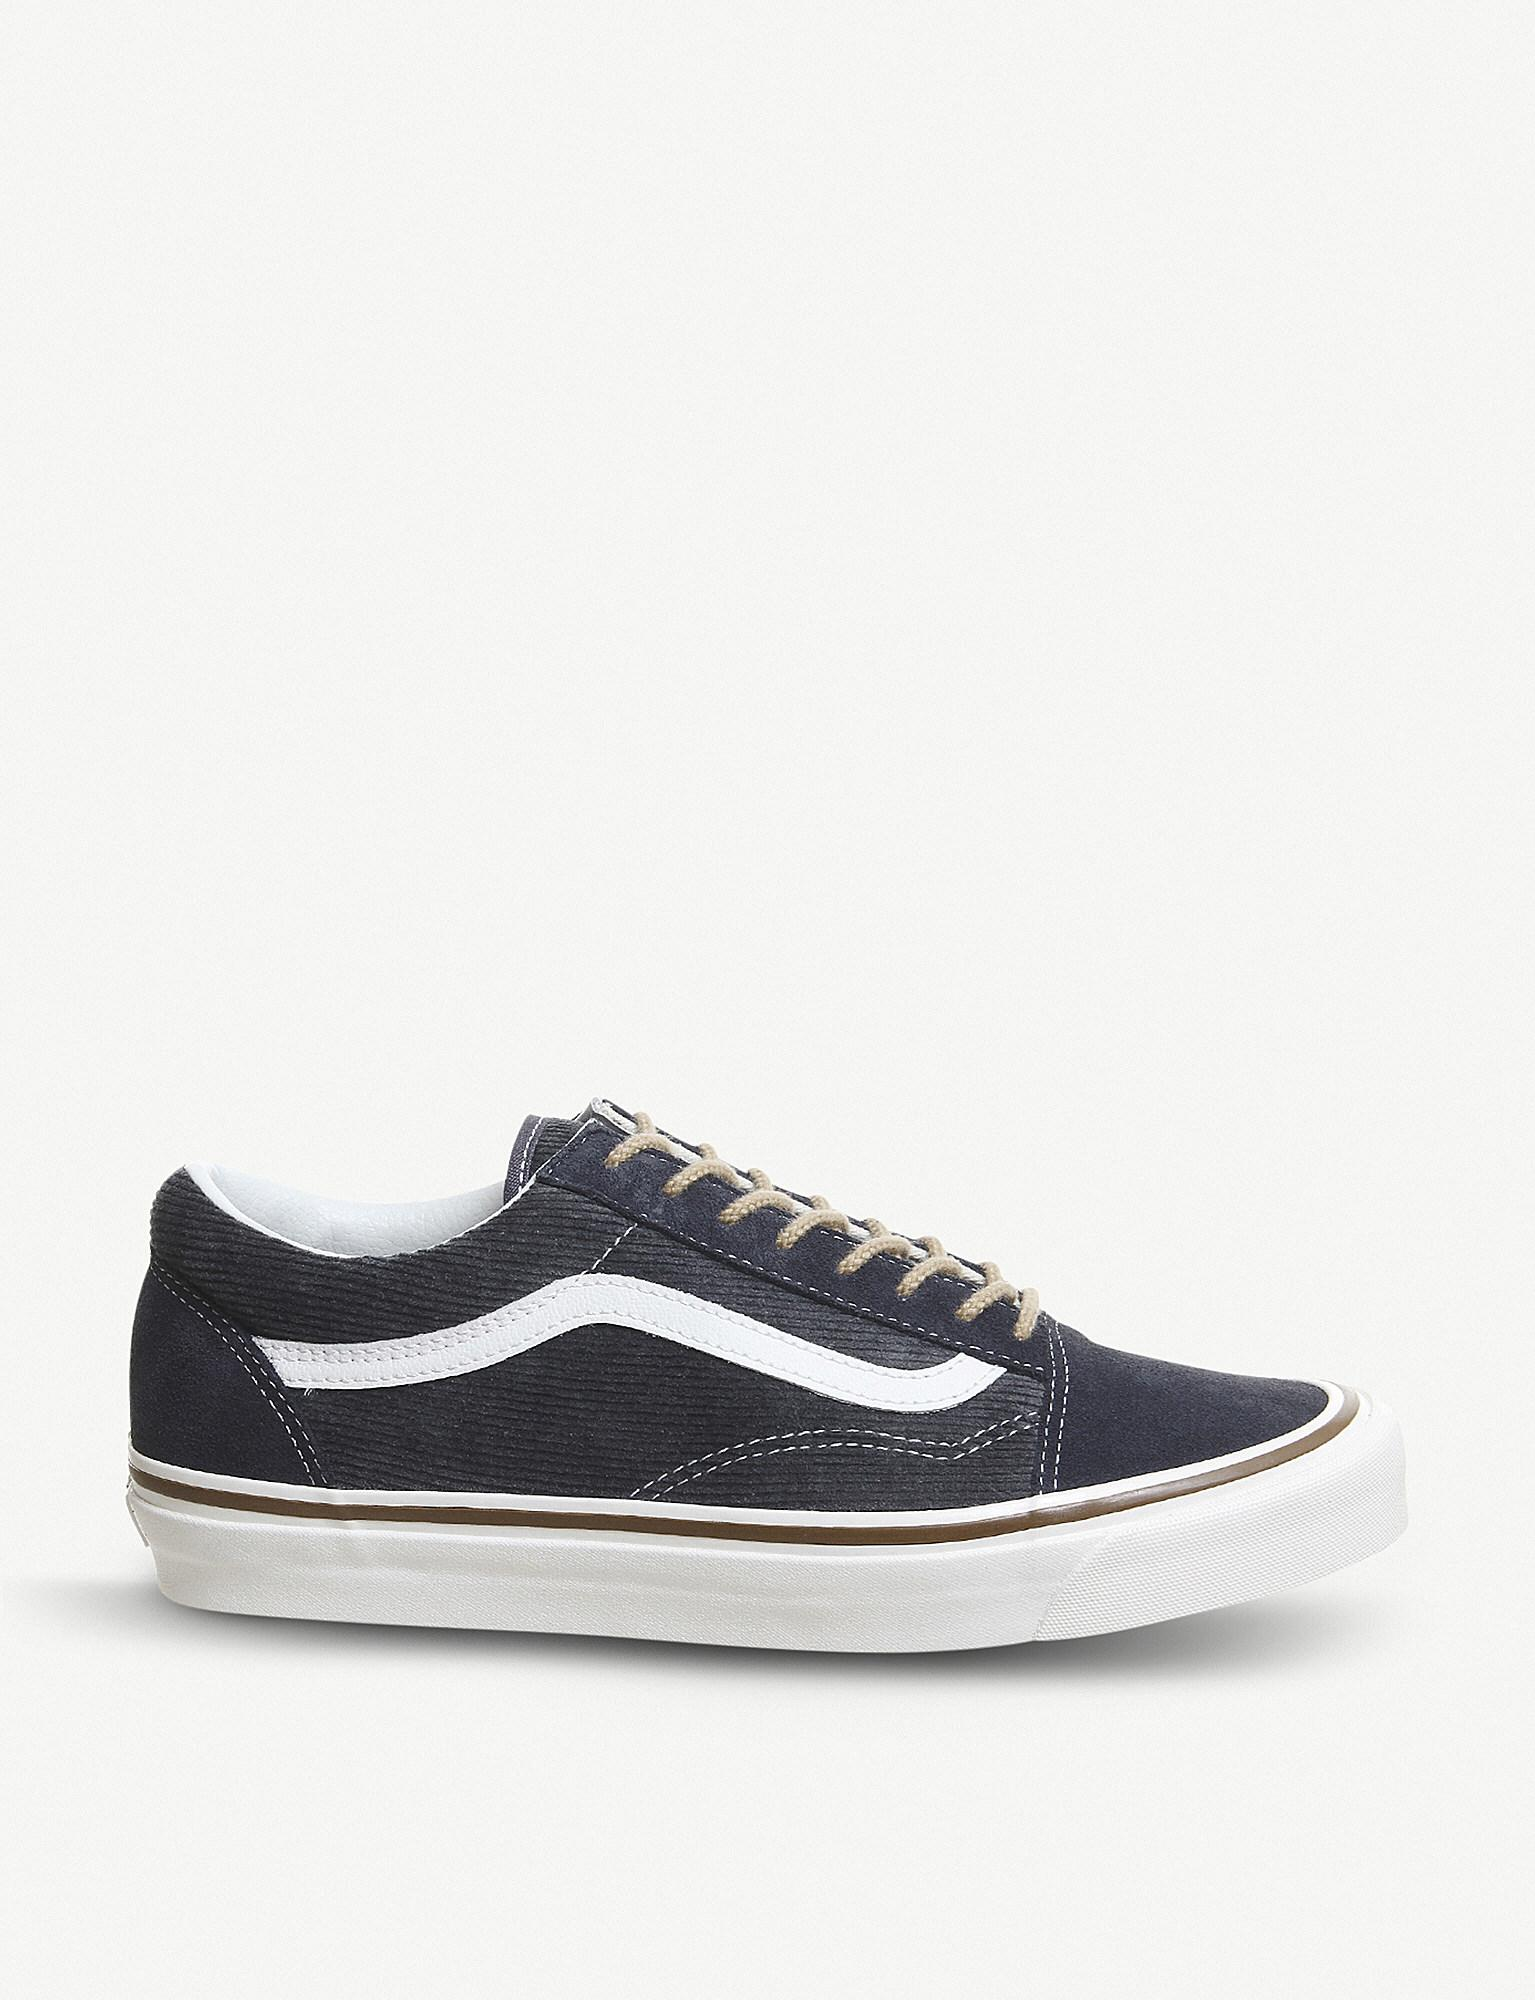 5a136b0899 Vans. Men s Blue Anaheim Factory Old Skool Dx Suede Suede And Canvas  Trainers